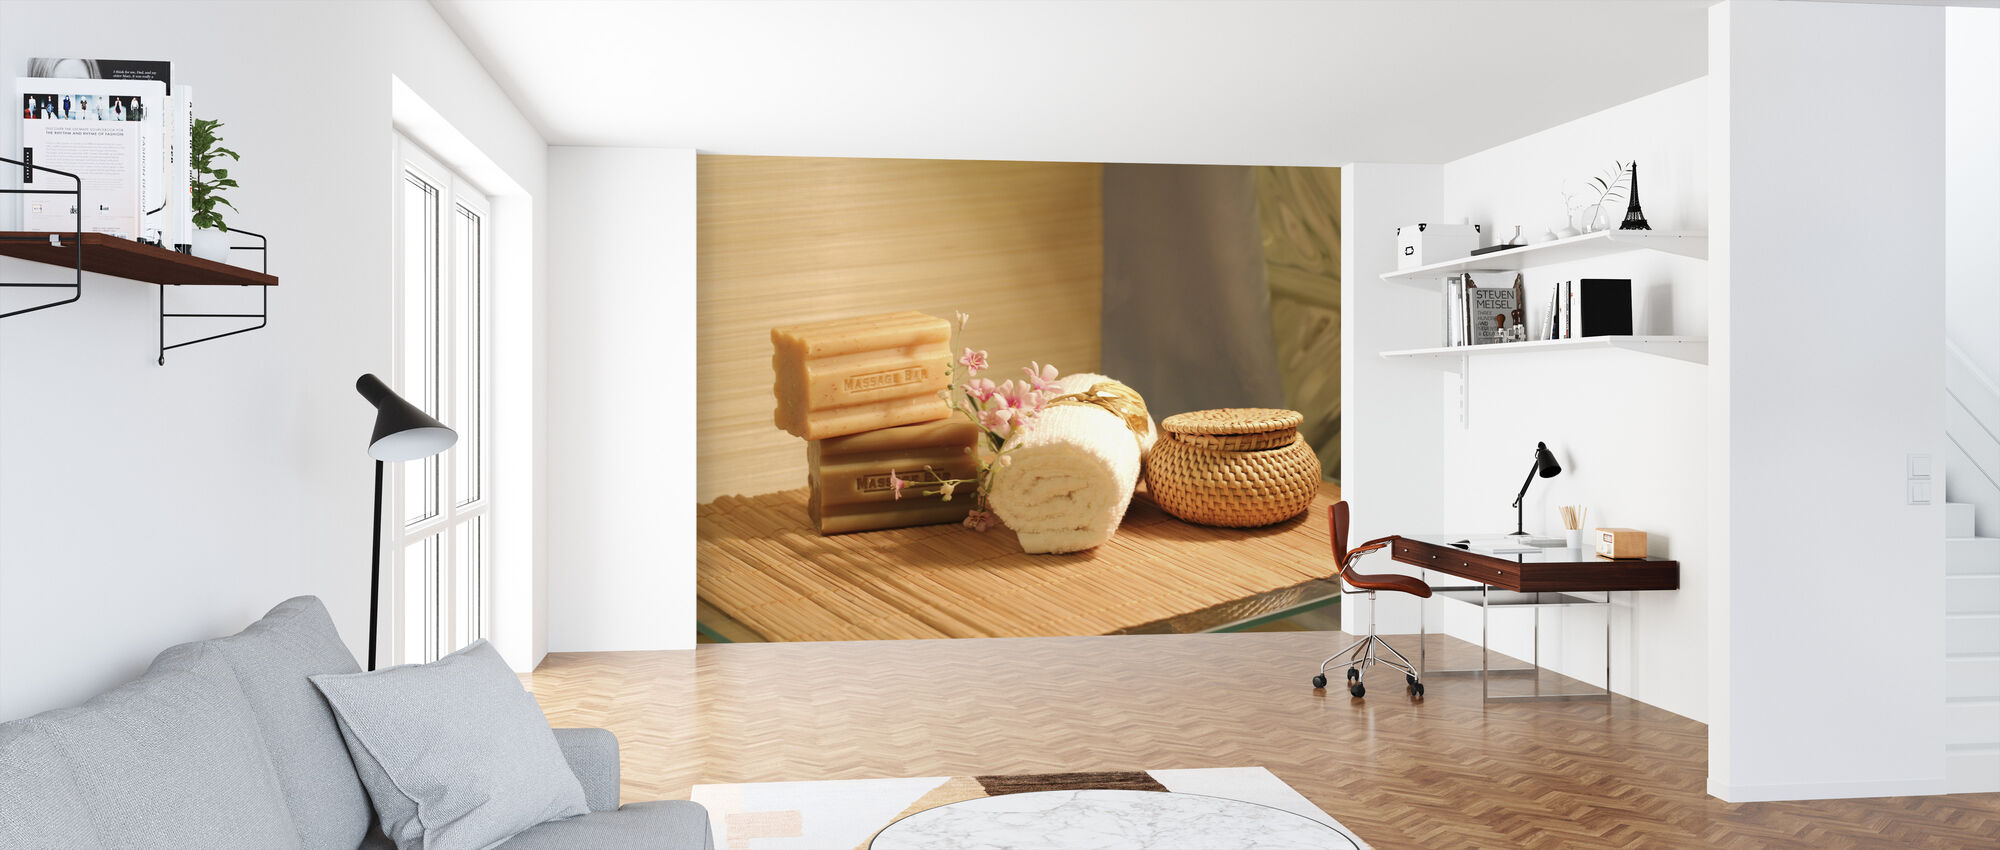 Massage Spa - Wallpaper - Office